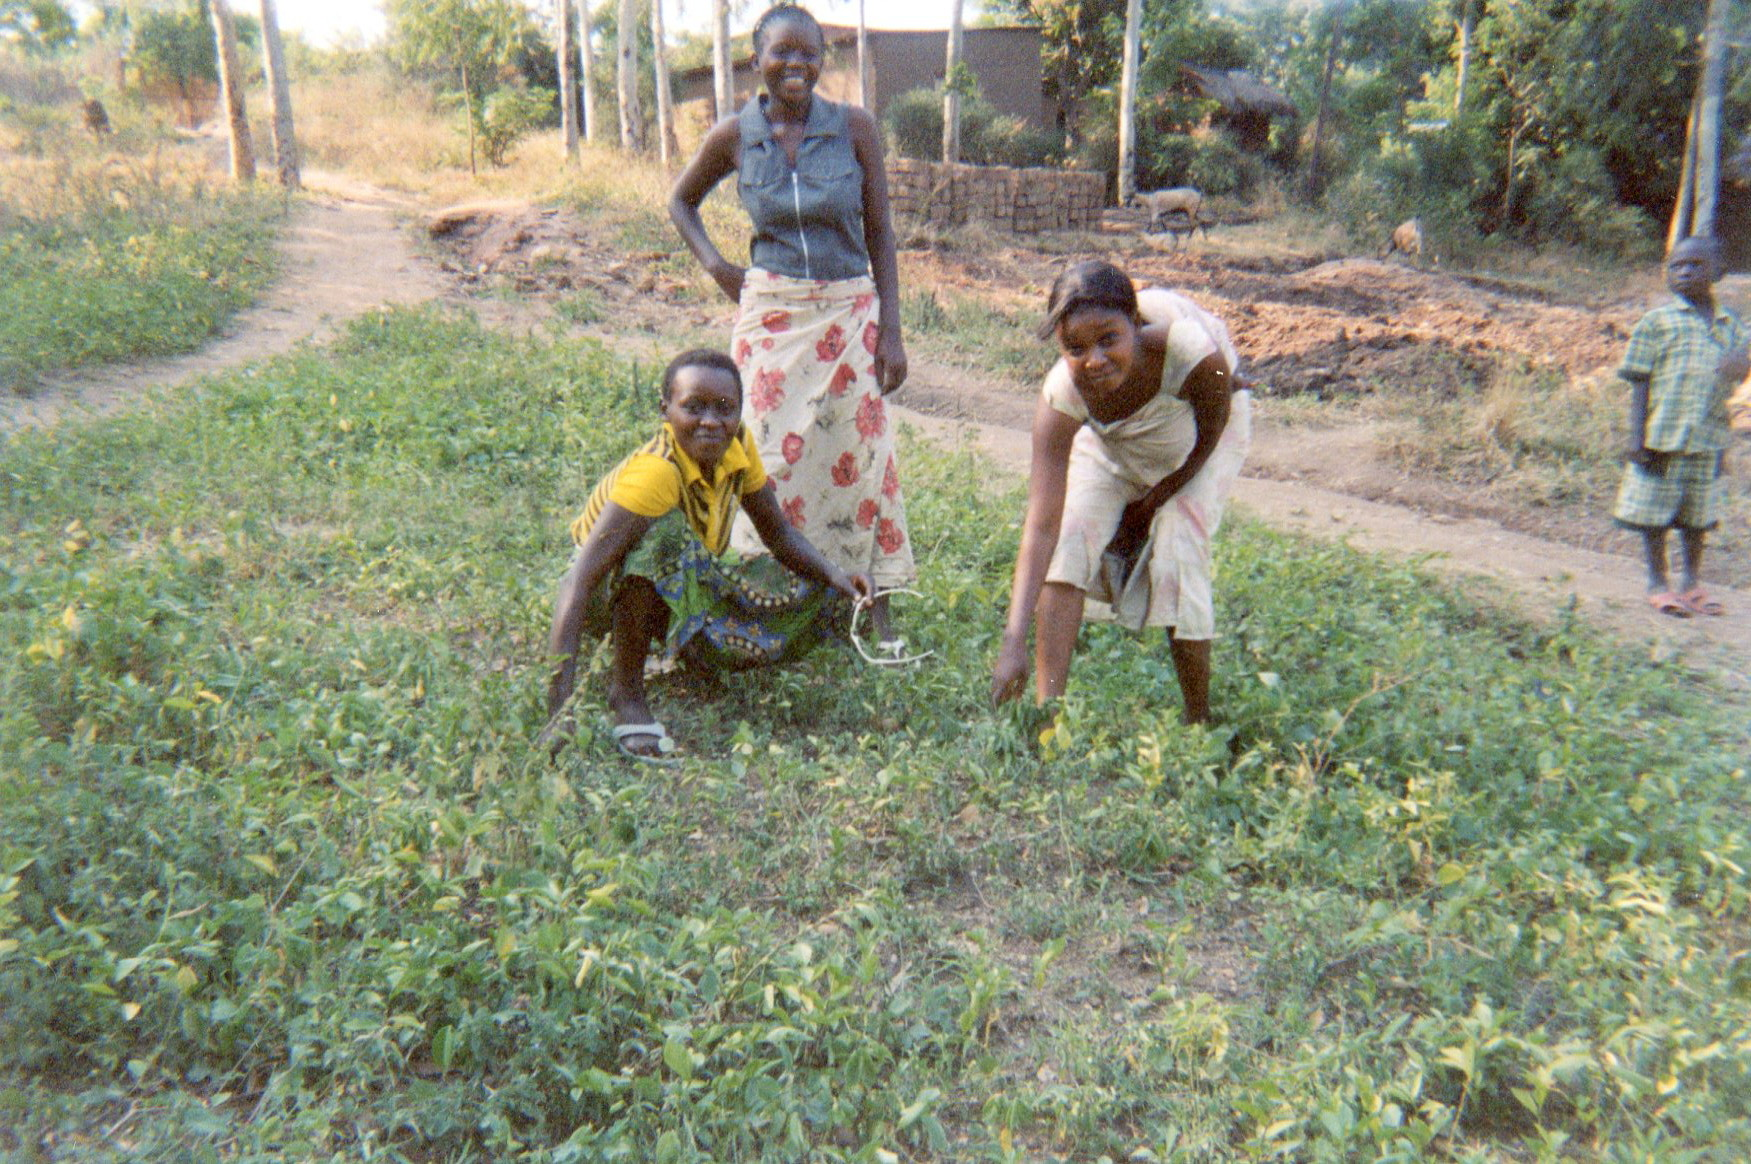 These photos show the ex-combatants in the field and the boys who were reintegrated before are showing the girls how to cultivate crops.